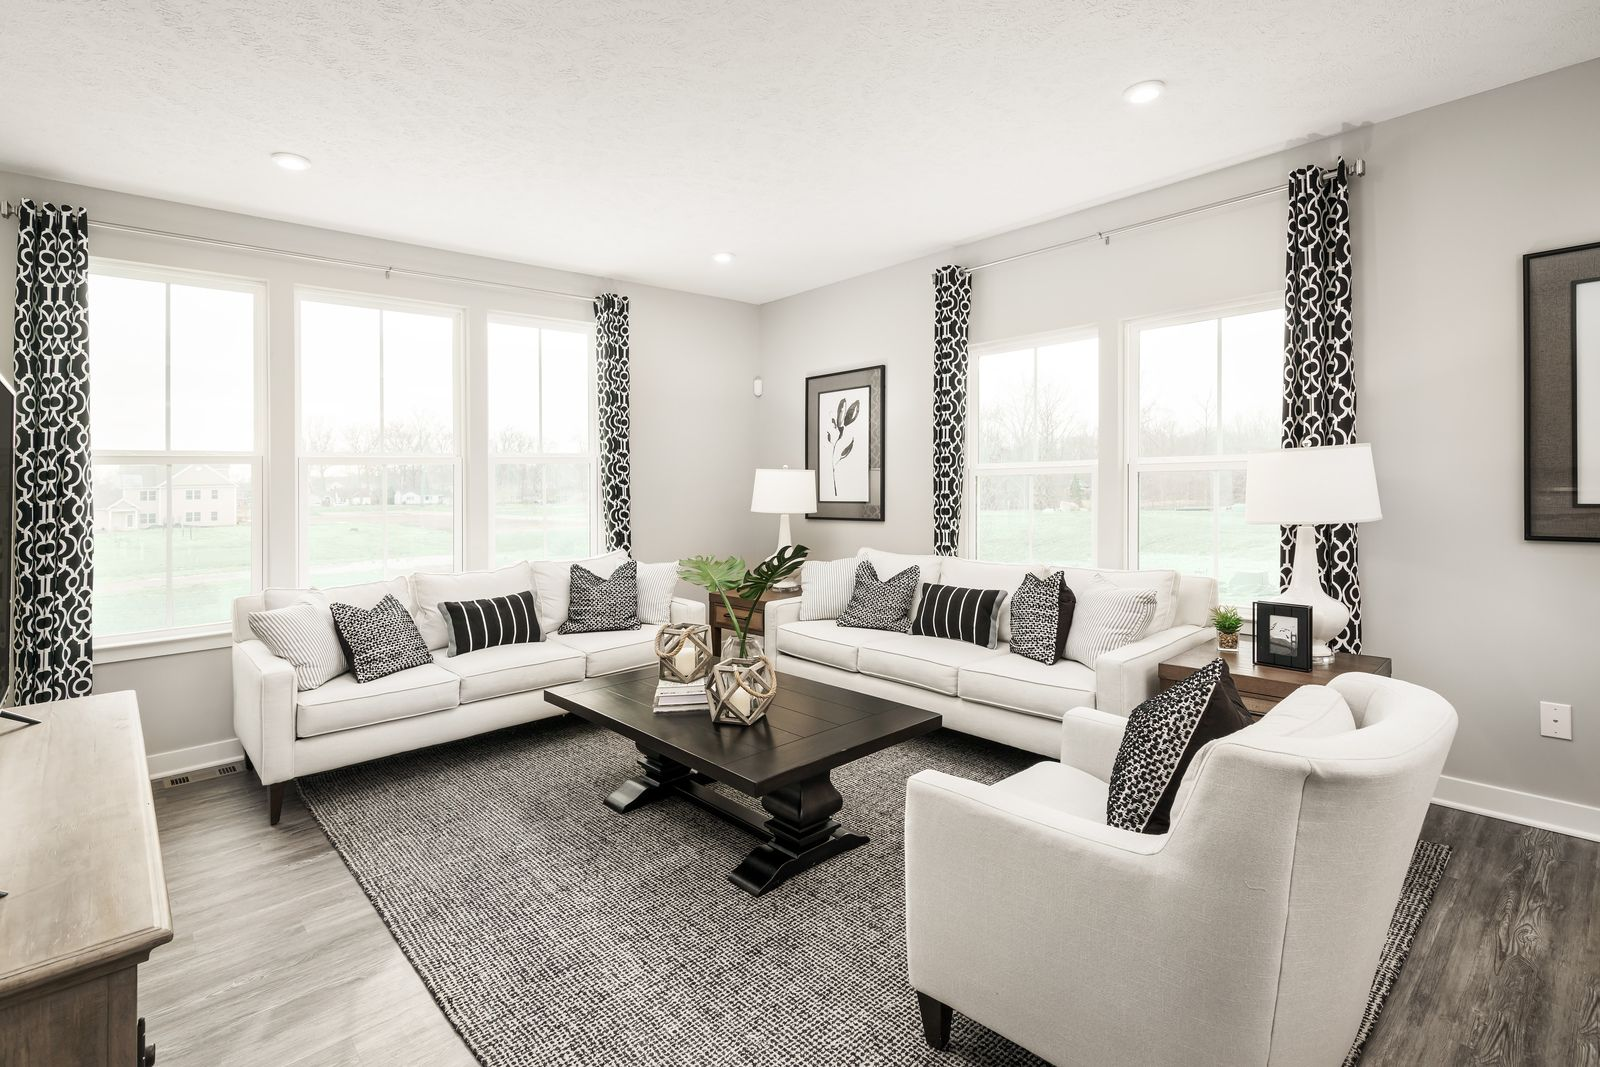 Living Area featured in the Wexford By Ryan Homes in Akron, OH